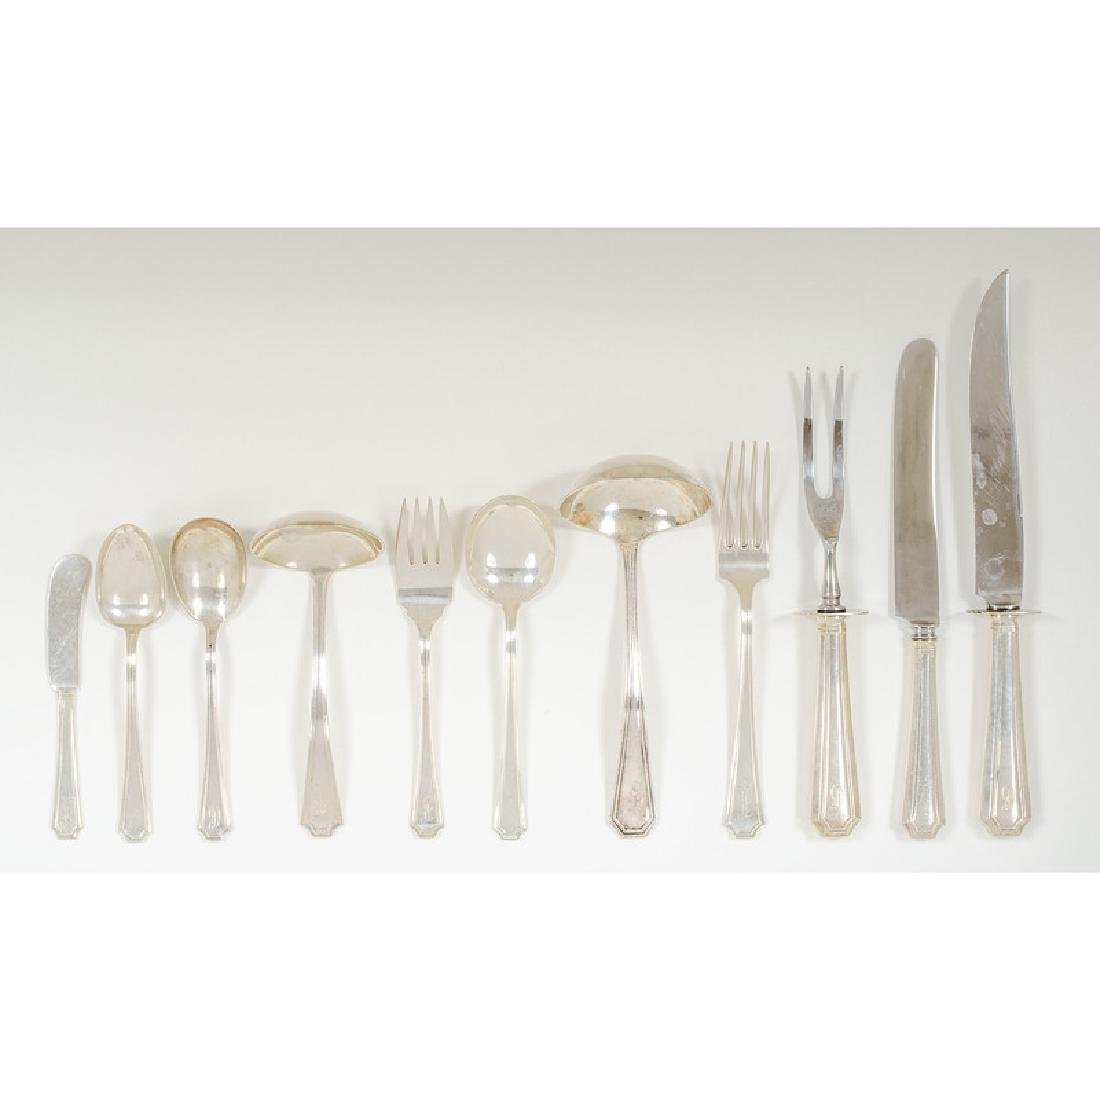 Gorham  Sterling Flatware,  Fairfax  Pattern - 2